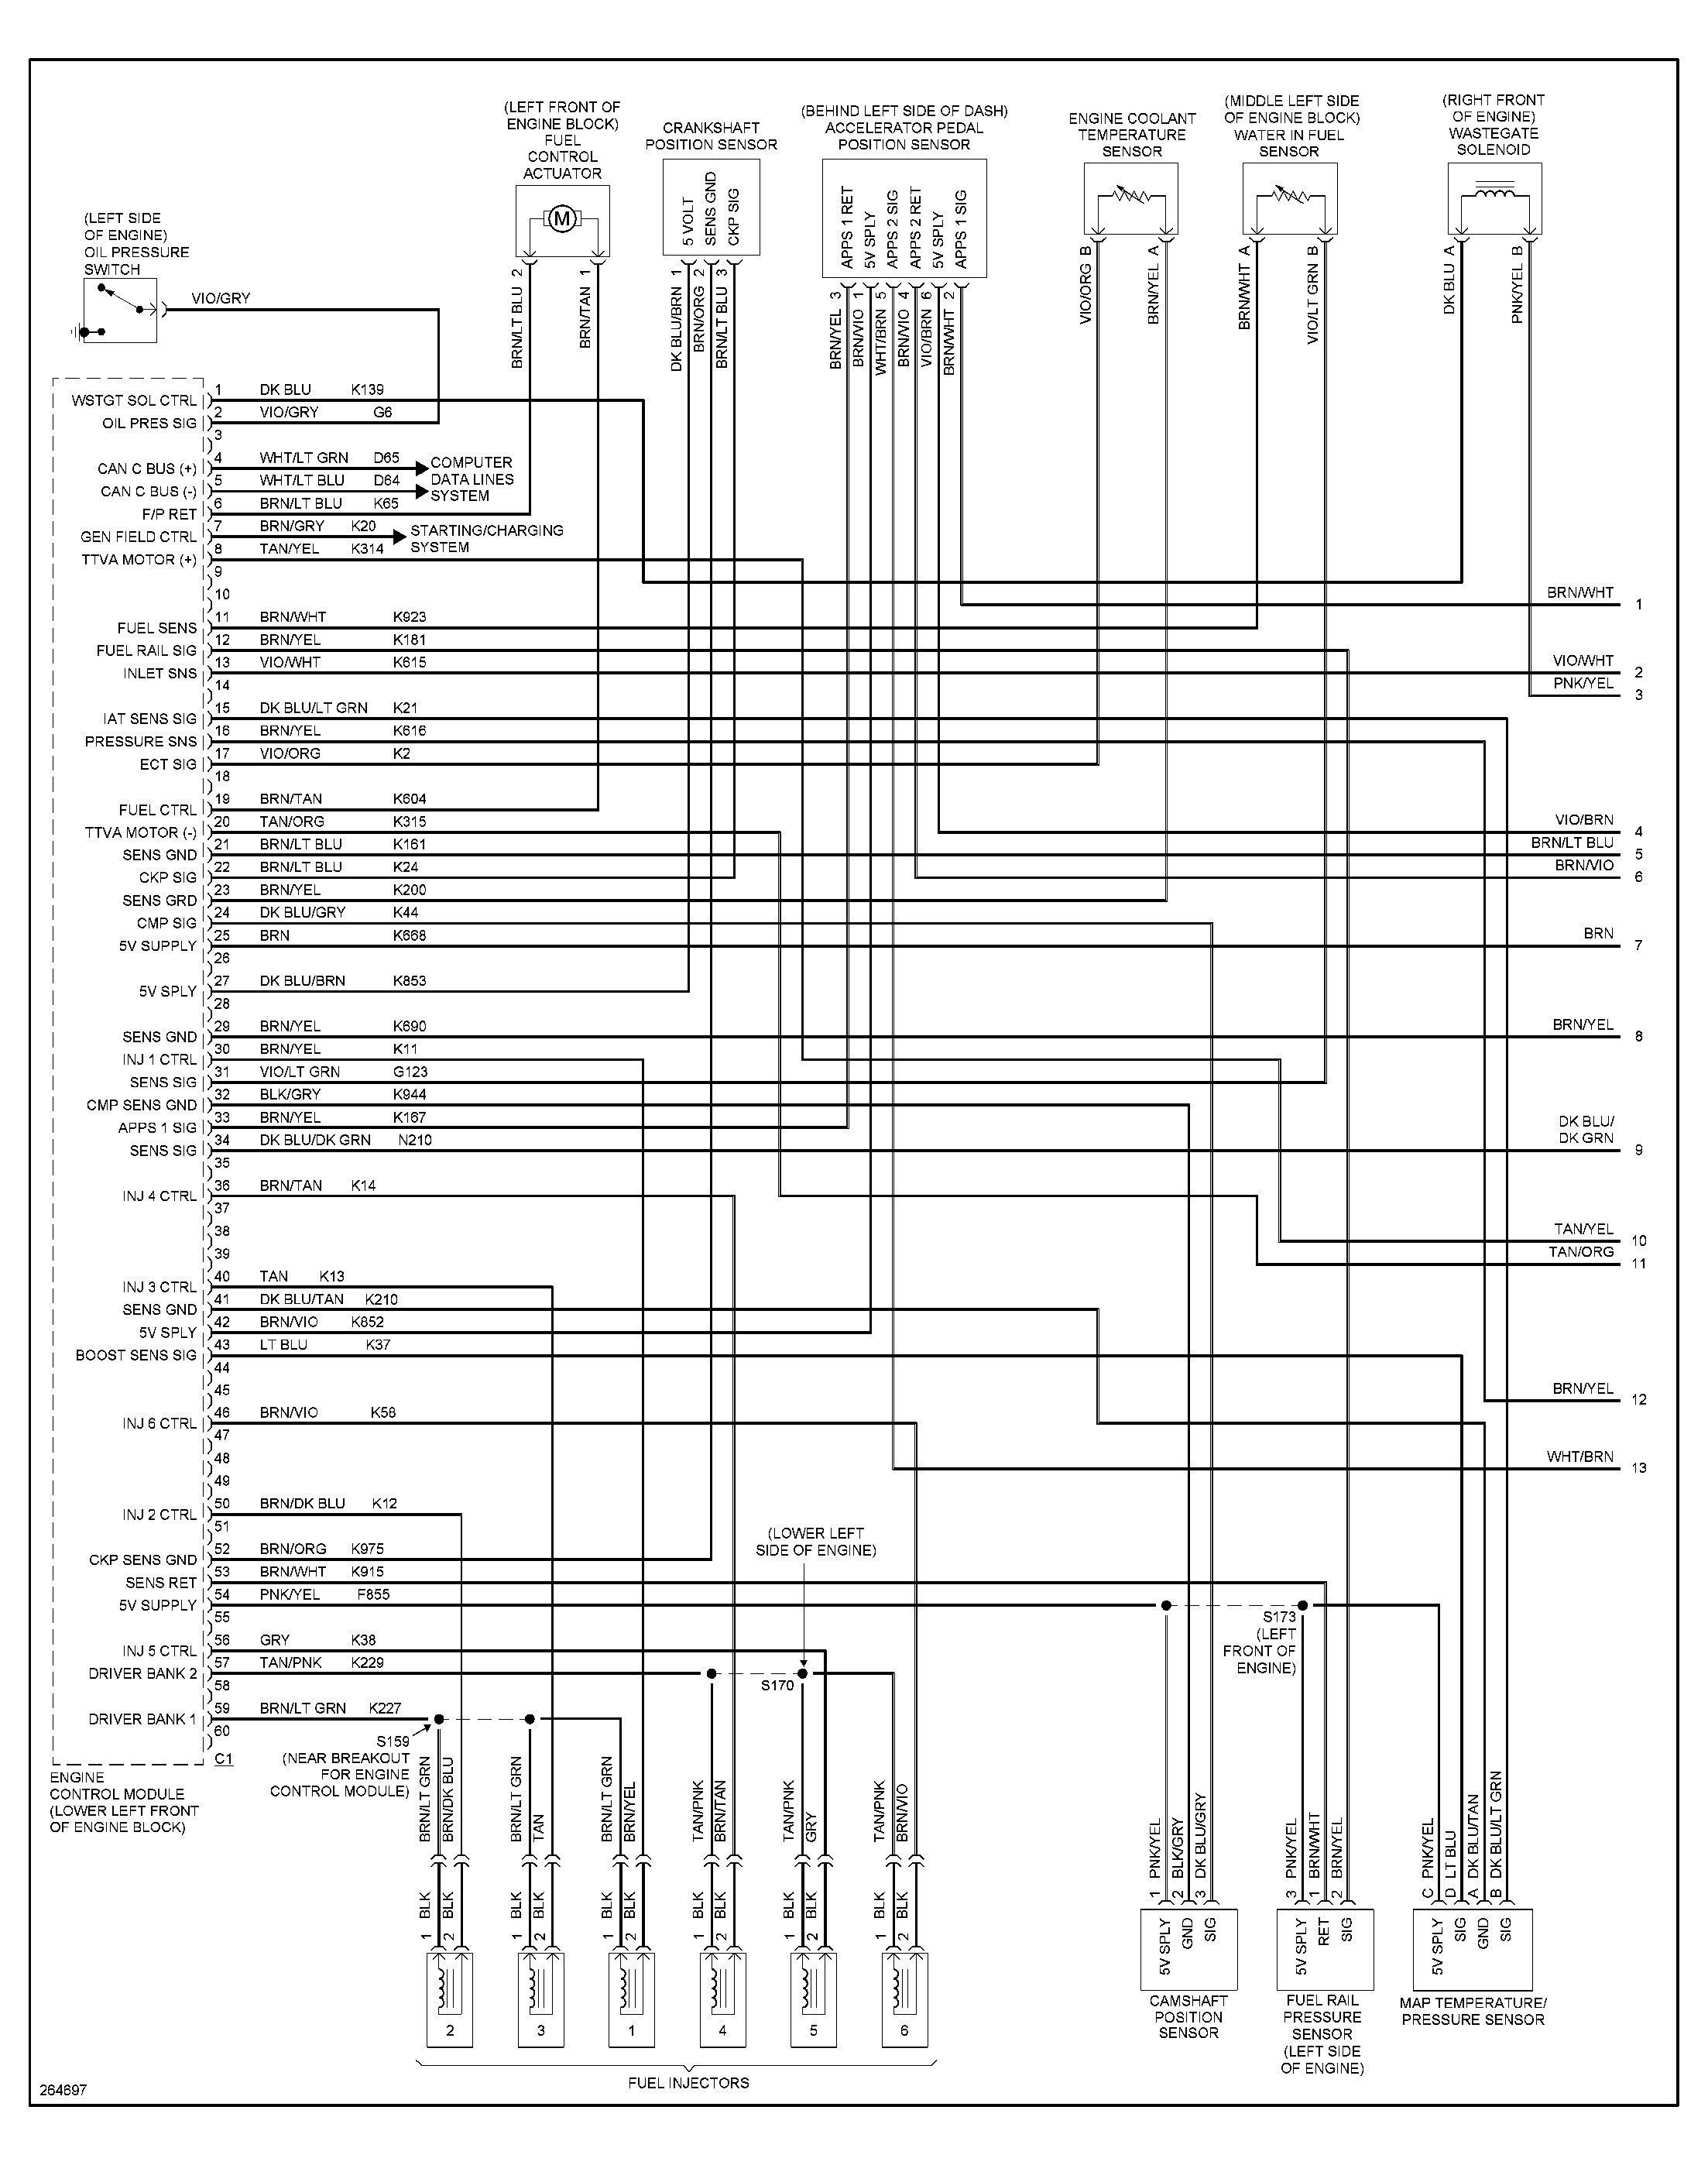 Unique 2004 Dodge Ram 1500 Headlight Wiring Diagram Diagram Diagramsample Diagramtemplate Wiringdiagram Diagr 2004 Dodge Ram 1500 Dodge Ram Dodge Ram 1500